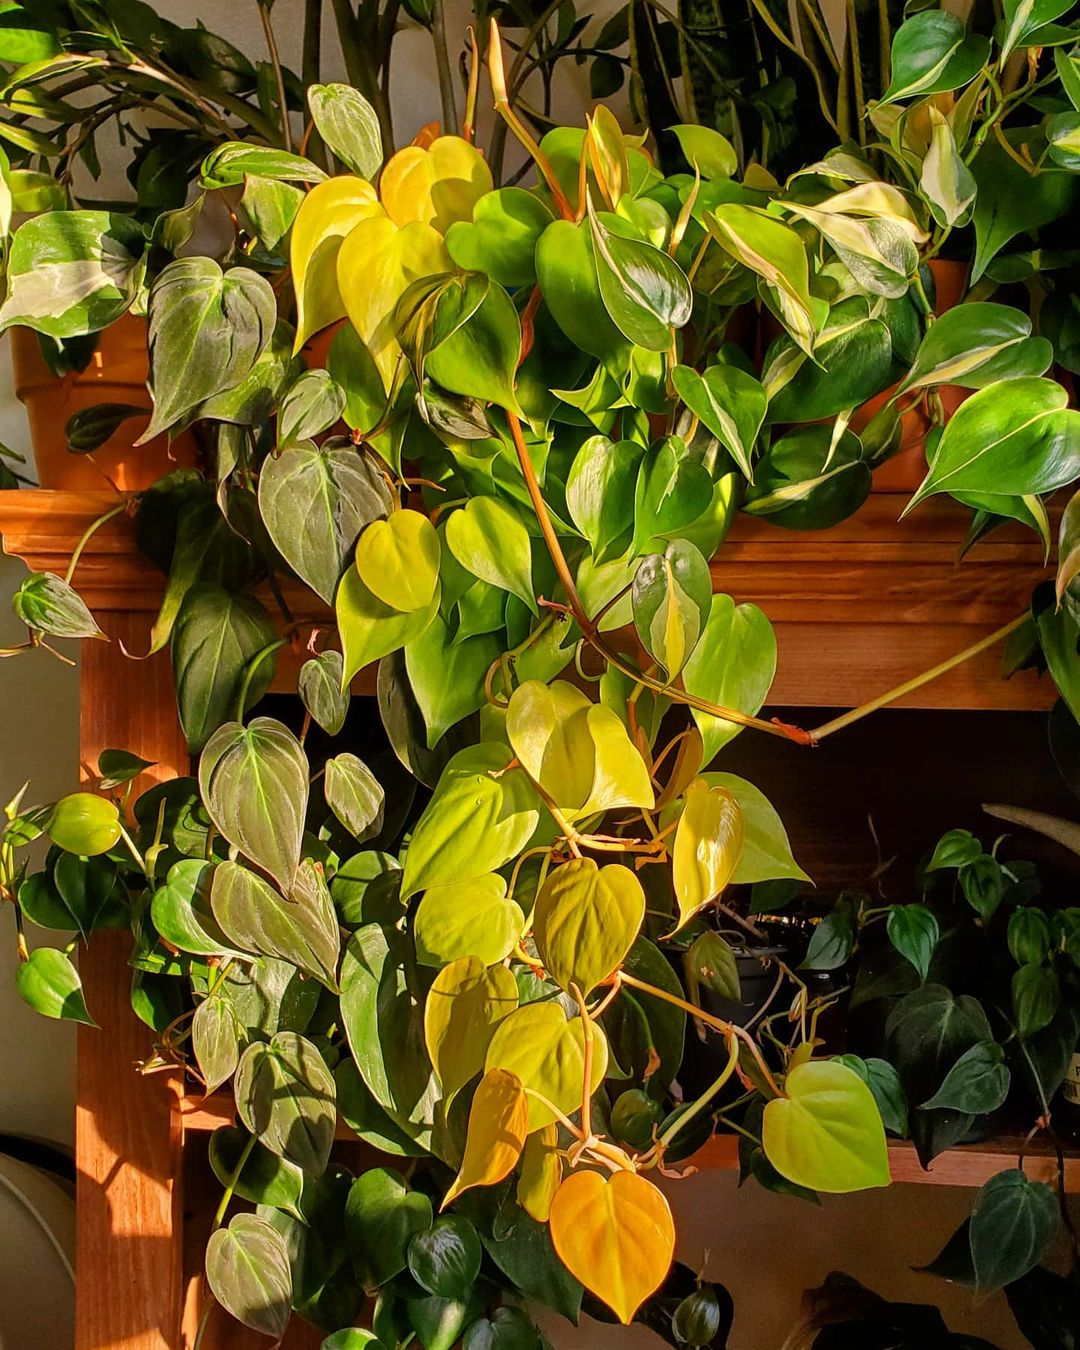 Philodendron Micans, Philodendron Hederaceum Neon, Philodendron Cream Splash, Philodendron Brasil